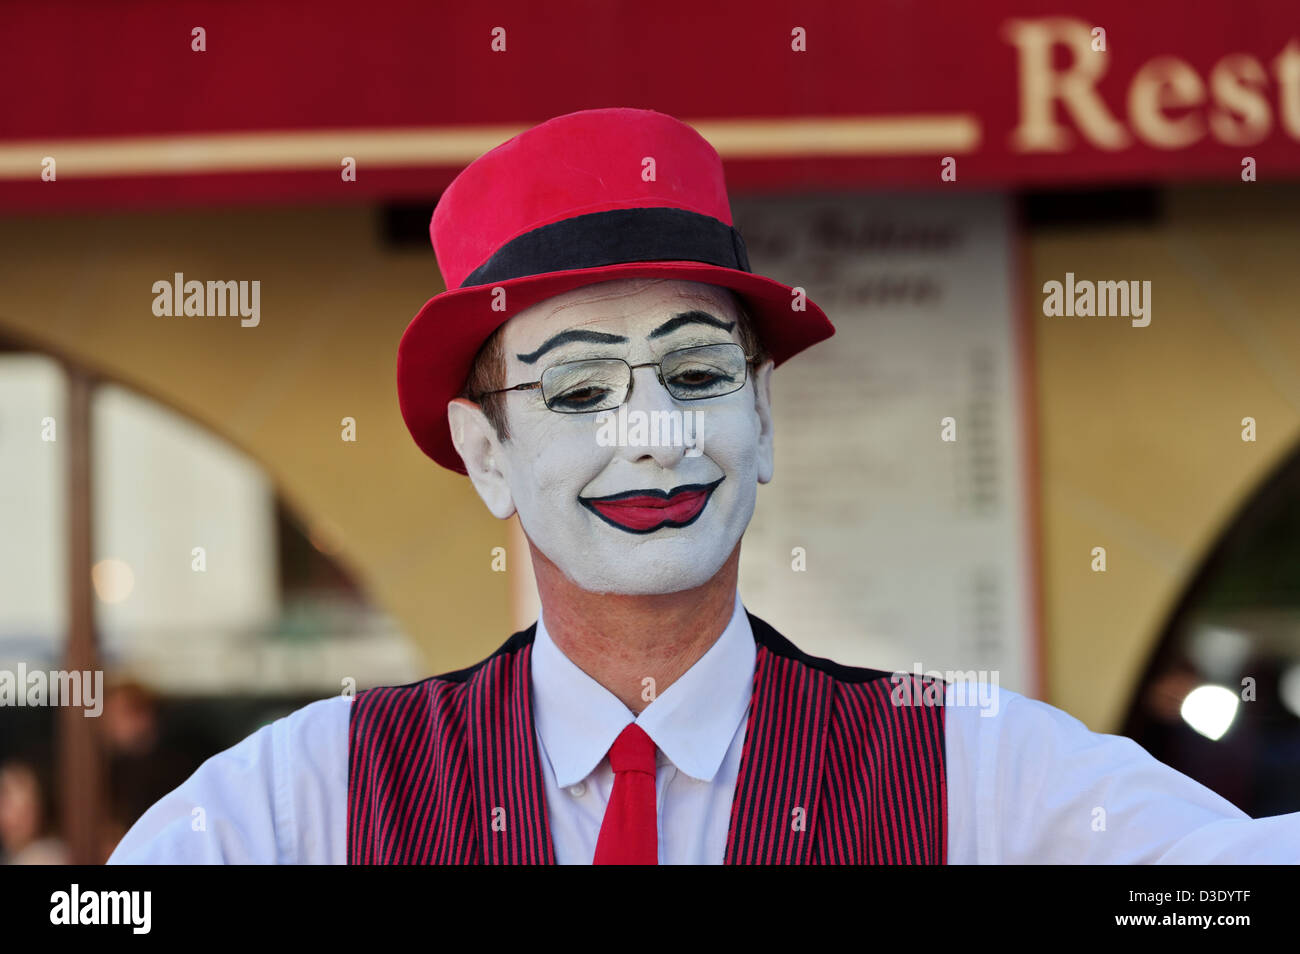 Mime artist performing on the street of Montmartre, Paris, France. - Stock Image